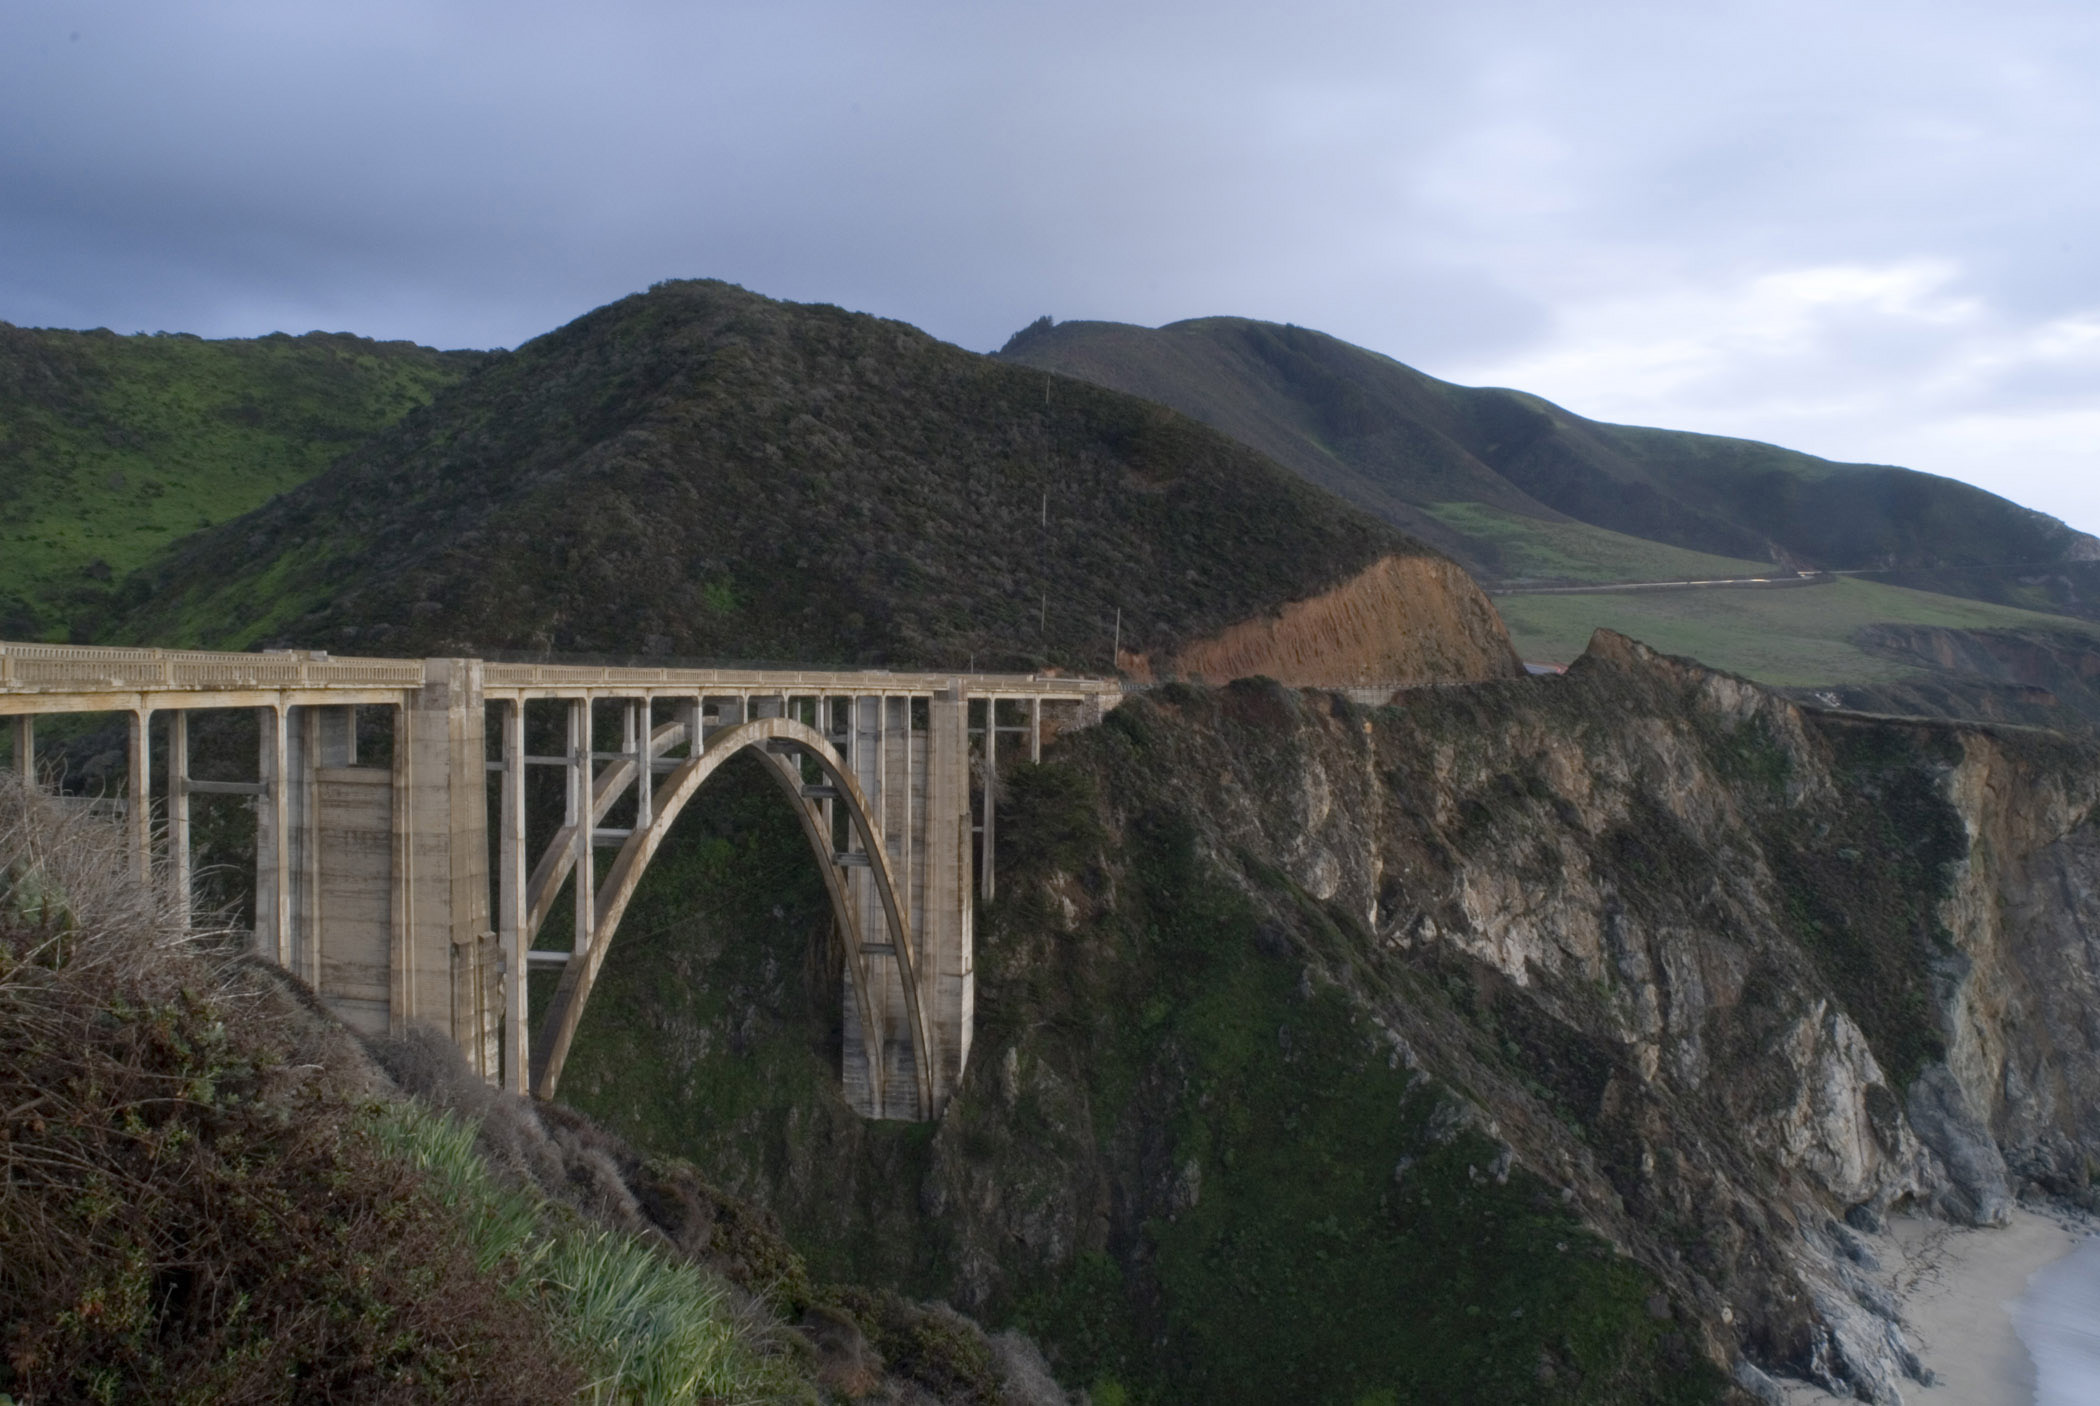 Scenic view of the steep rocky cliffs on the Big Sur coastline in Californa with the concrete arch of the Bixby Creek road bridge